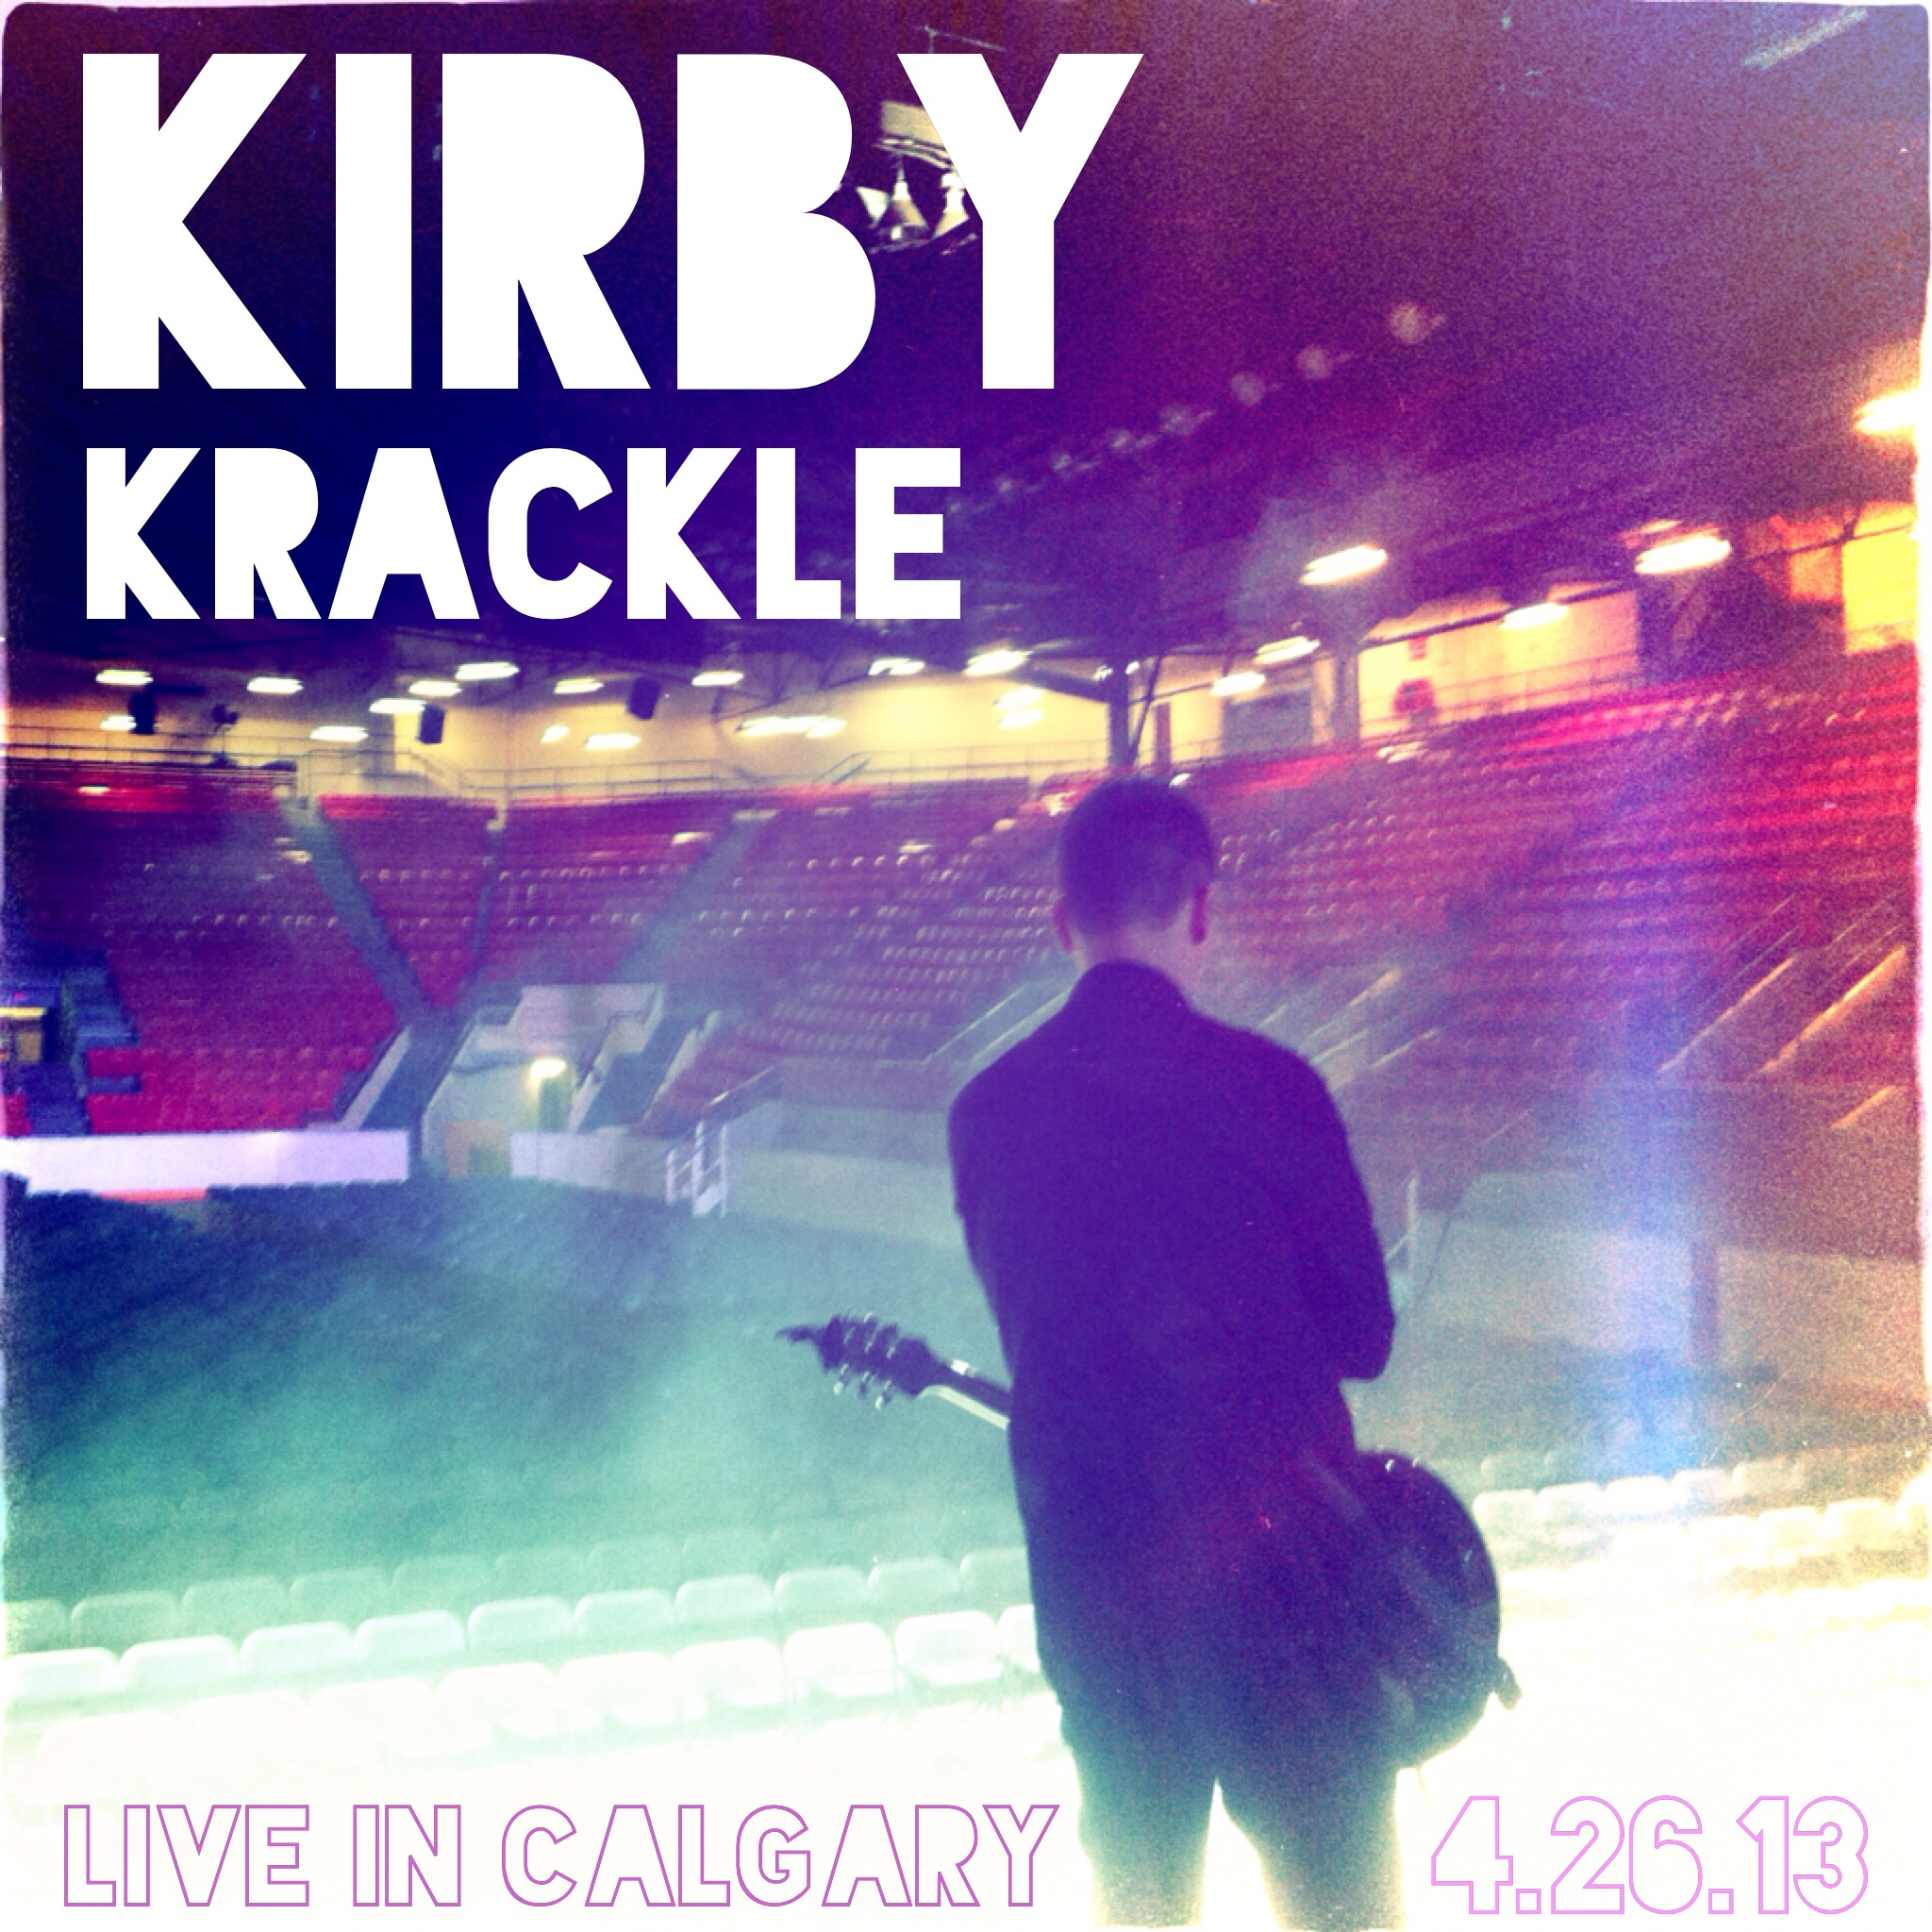 Kirby Krackle - Live In Calgary (2014)  Available on  iTunes  and Bandcamp.